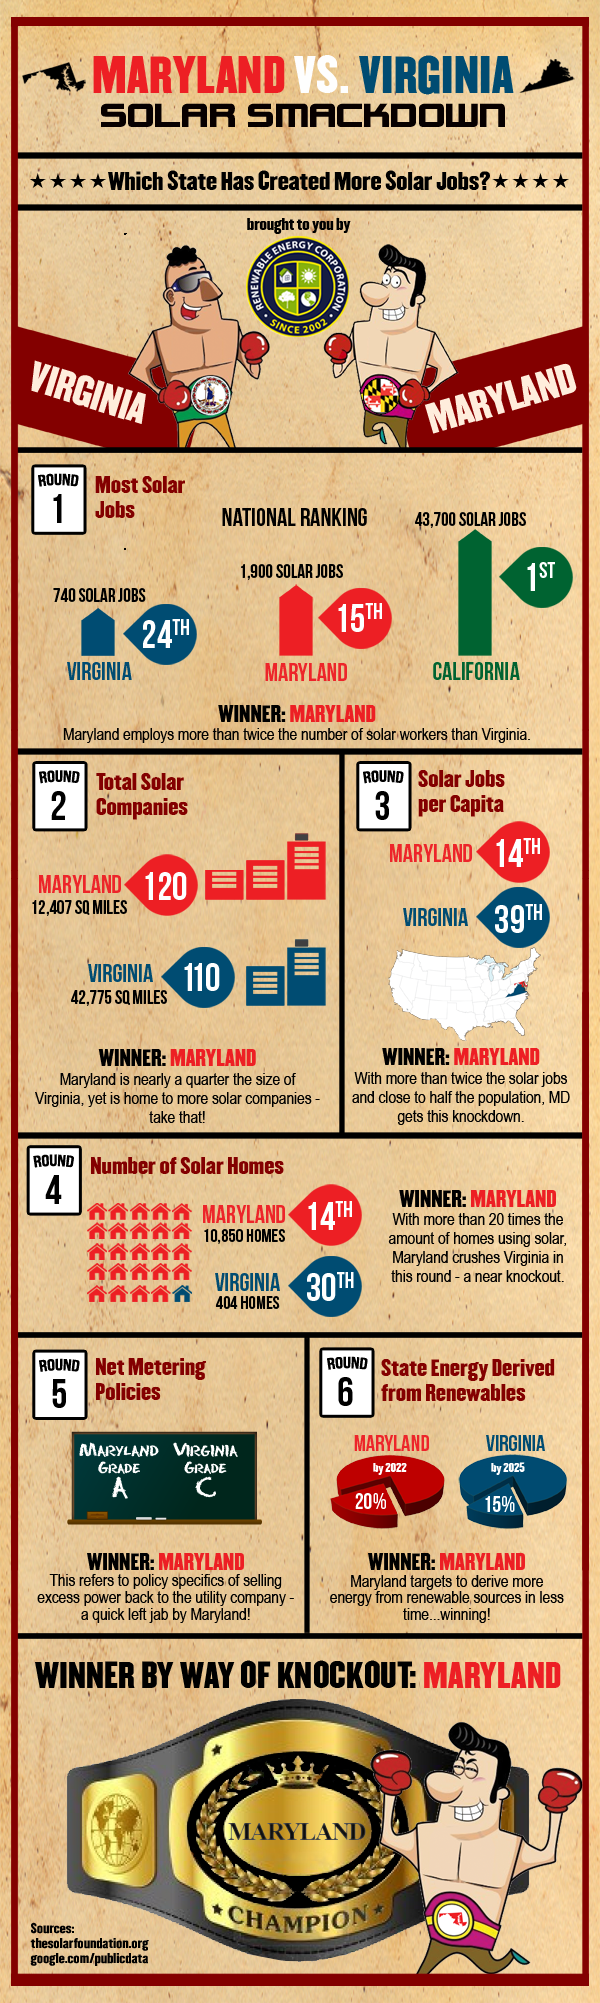 virginia-maryland-solar-infographic